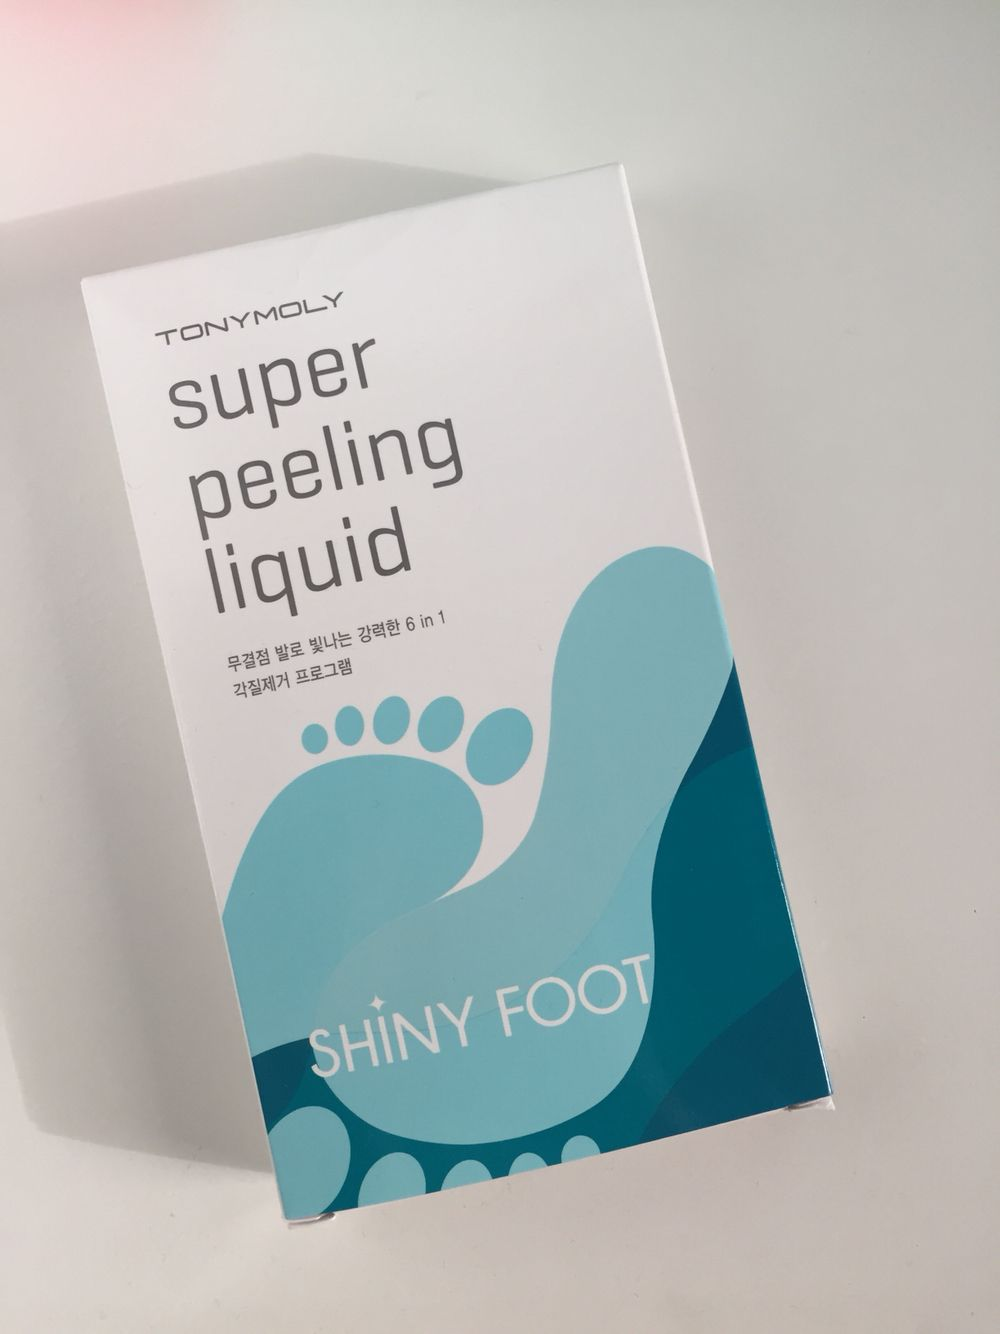 Tony Moly Shiny Foot Super Peeling Liquid